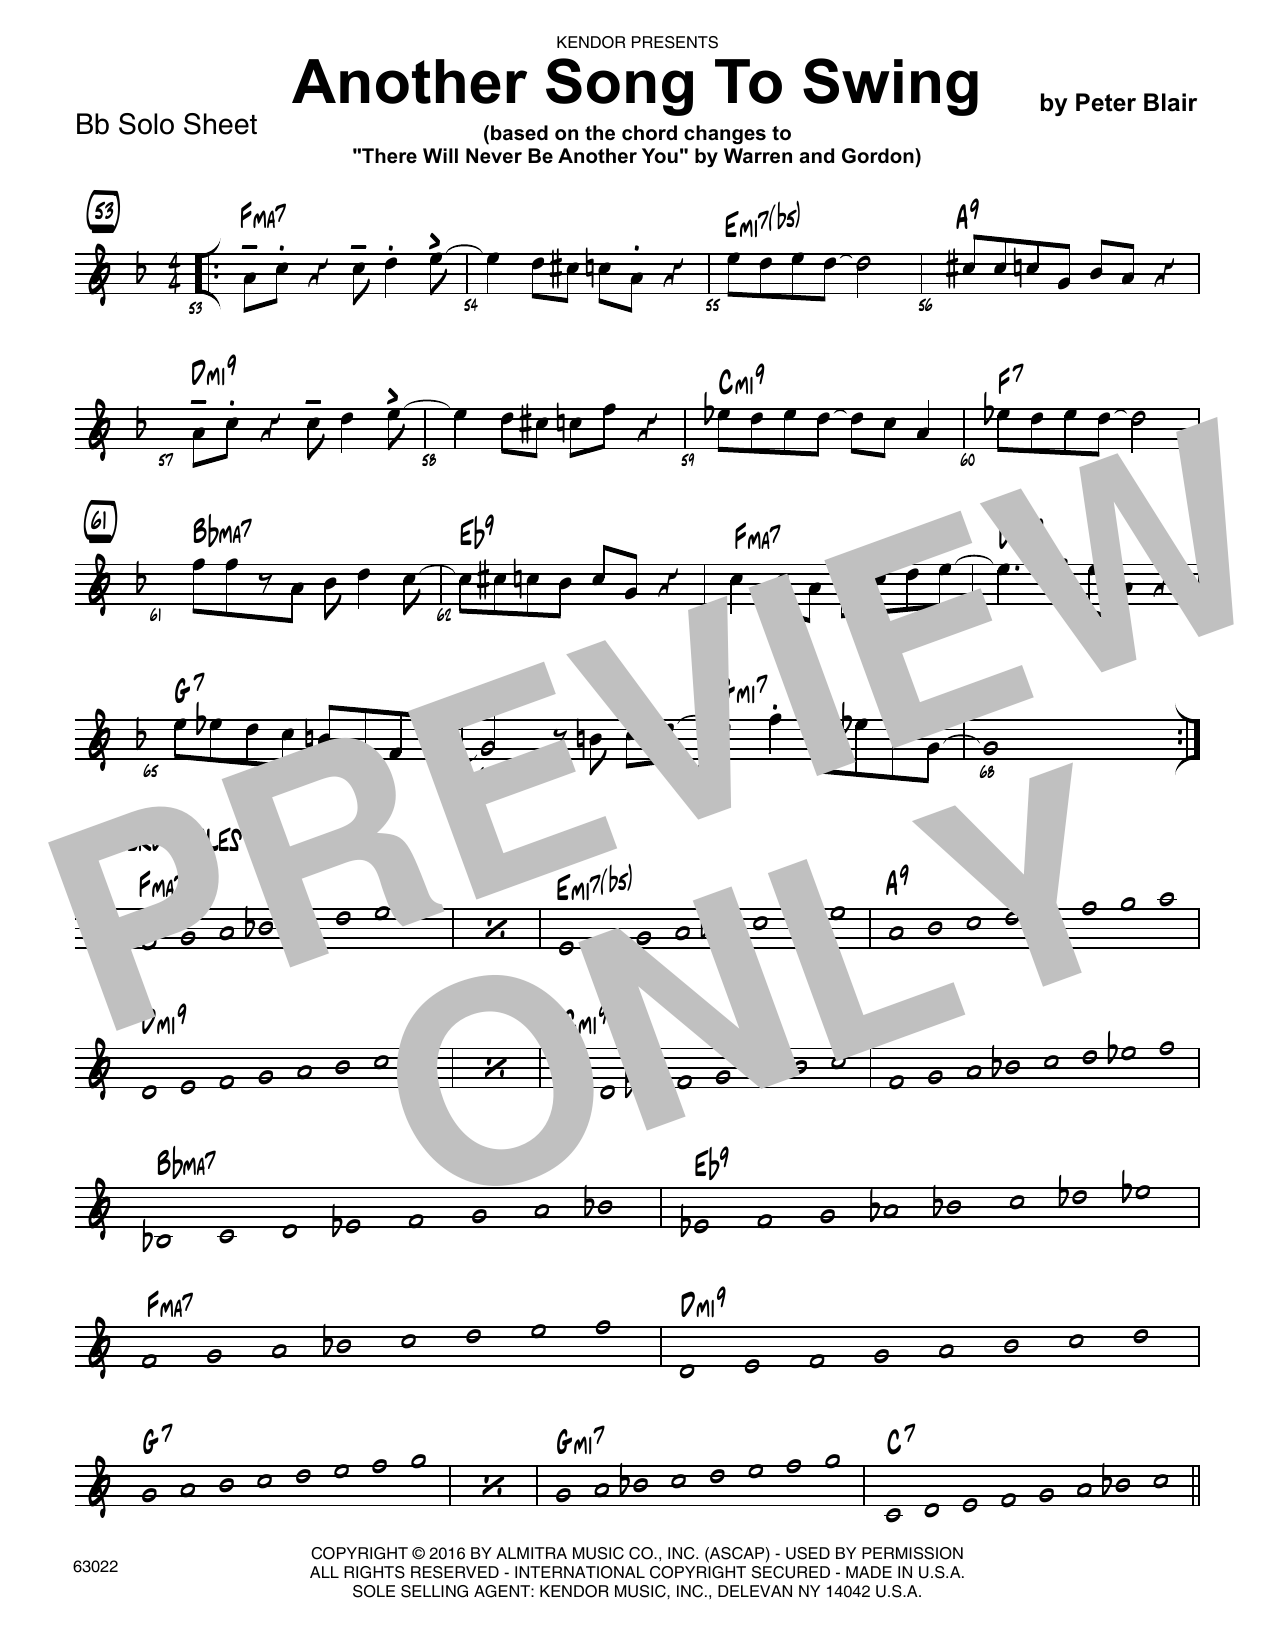 Another Song To Swing - Bb Solo Sheet Sheet Music